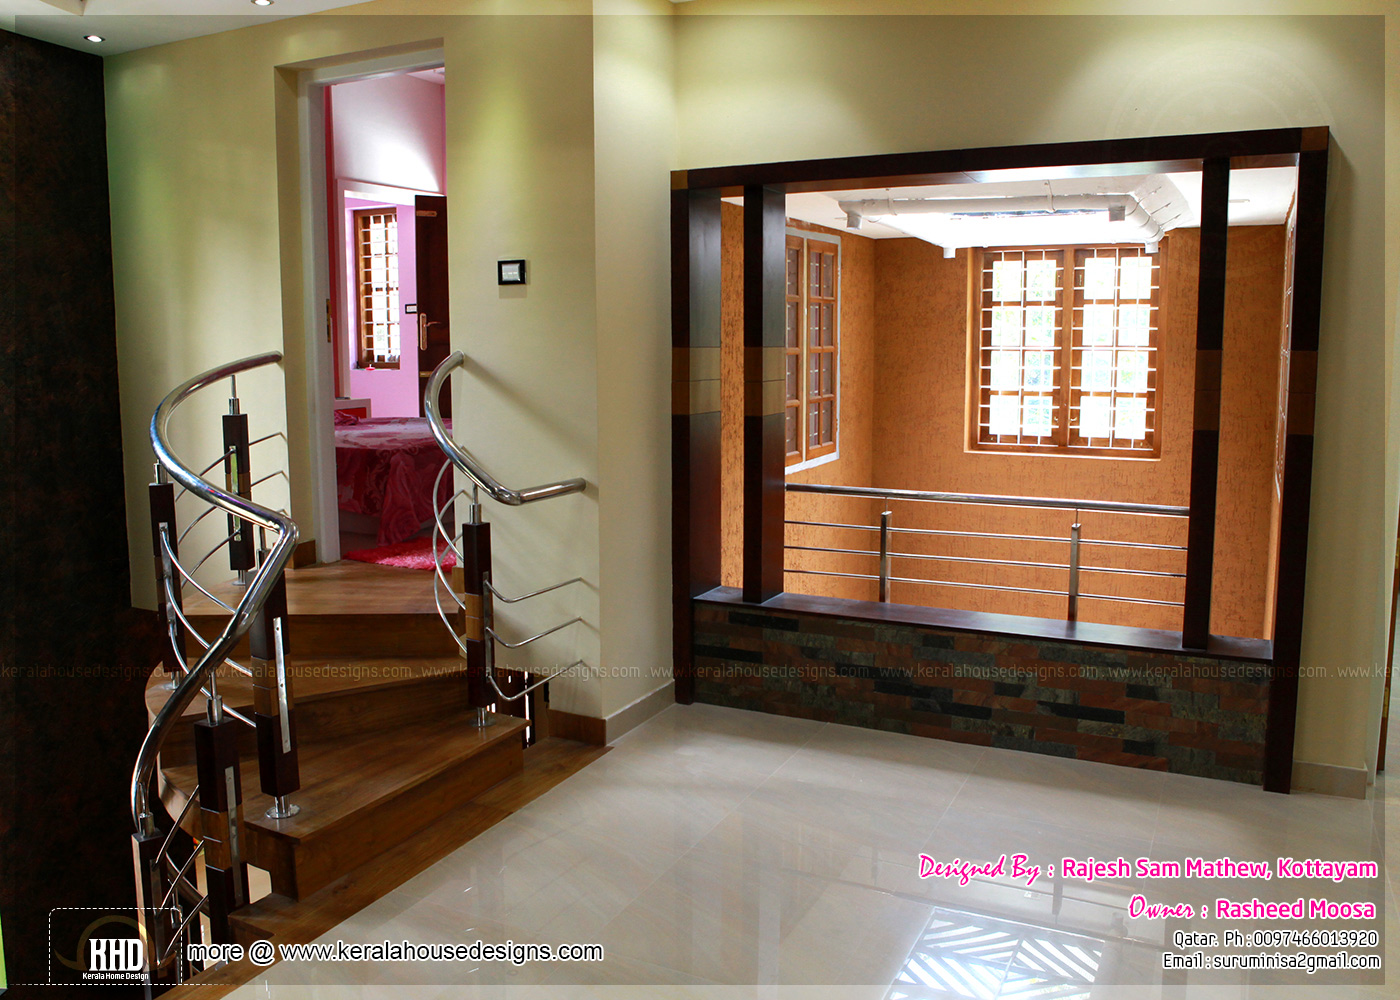 Kerala interior design with photos kerala home design for House plans with inside photos